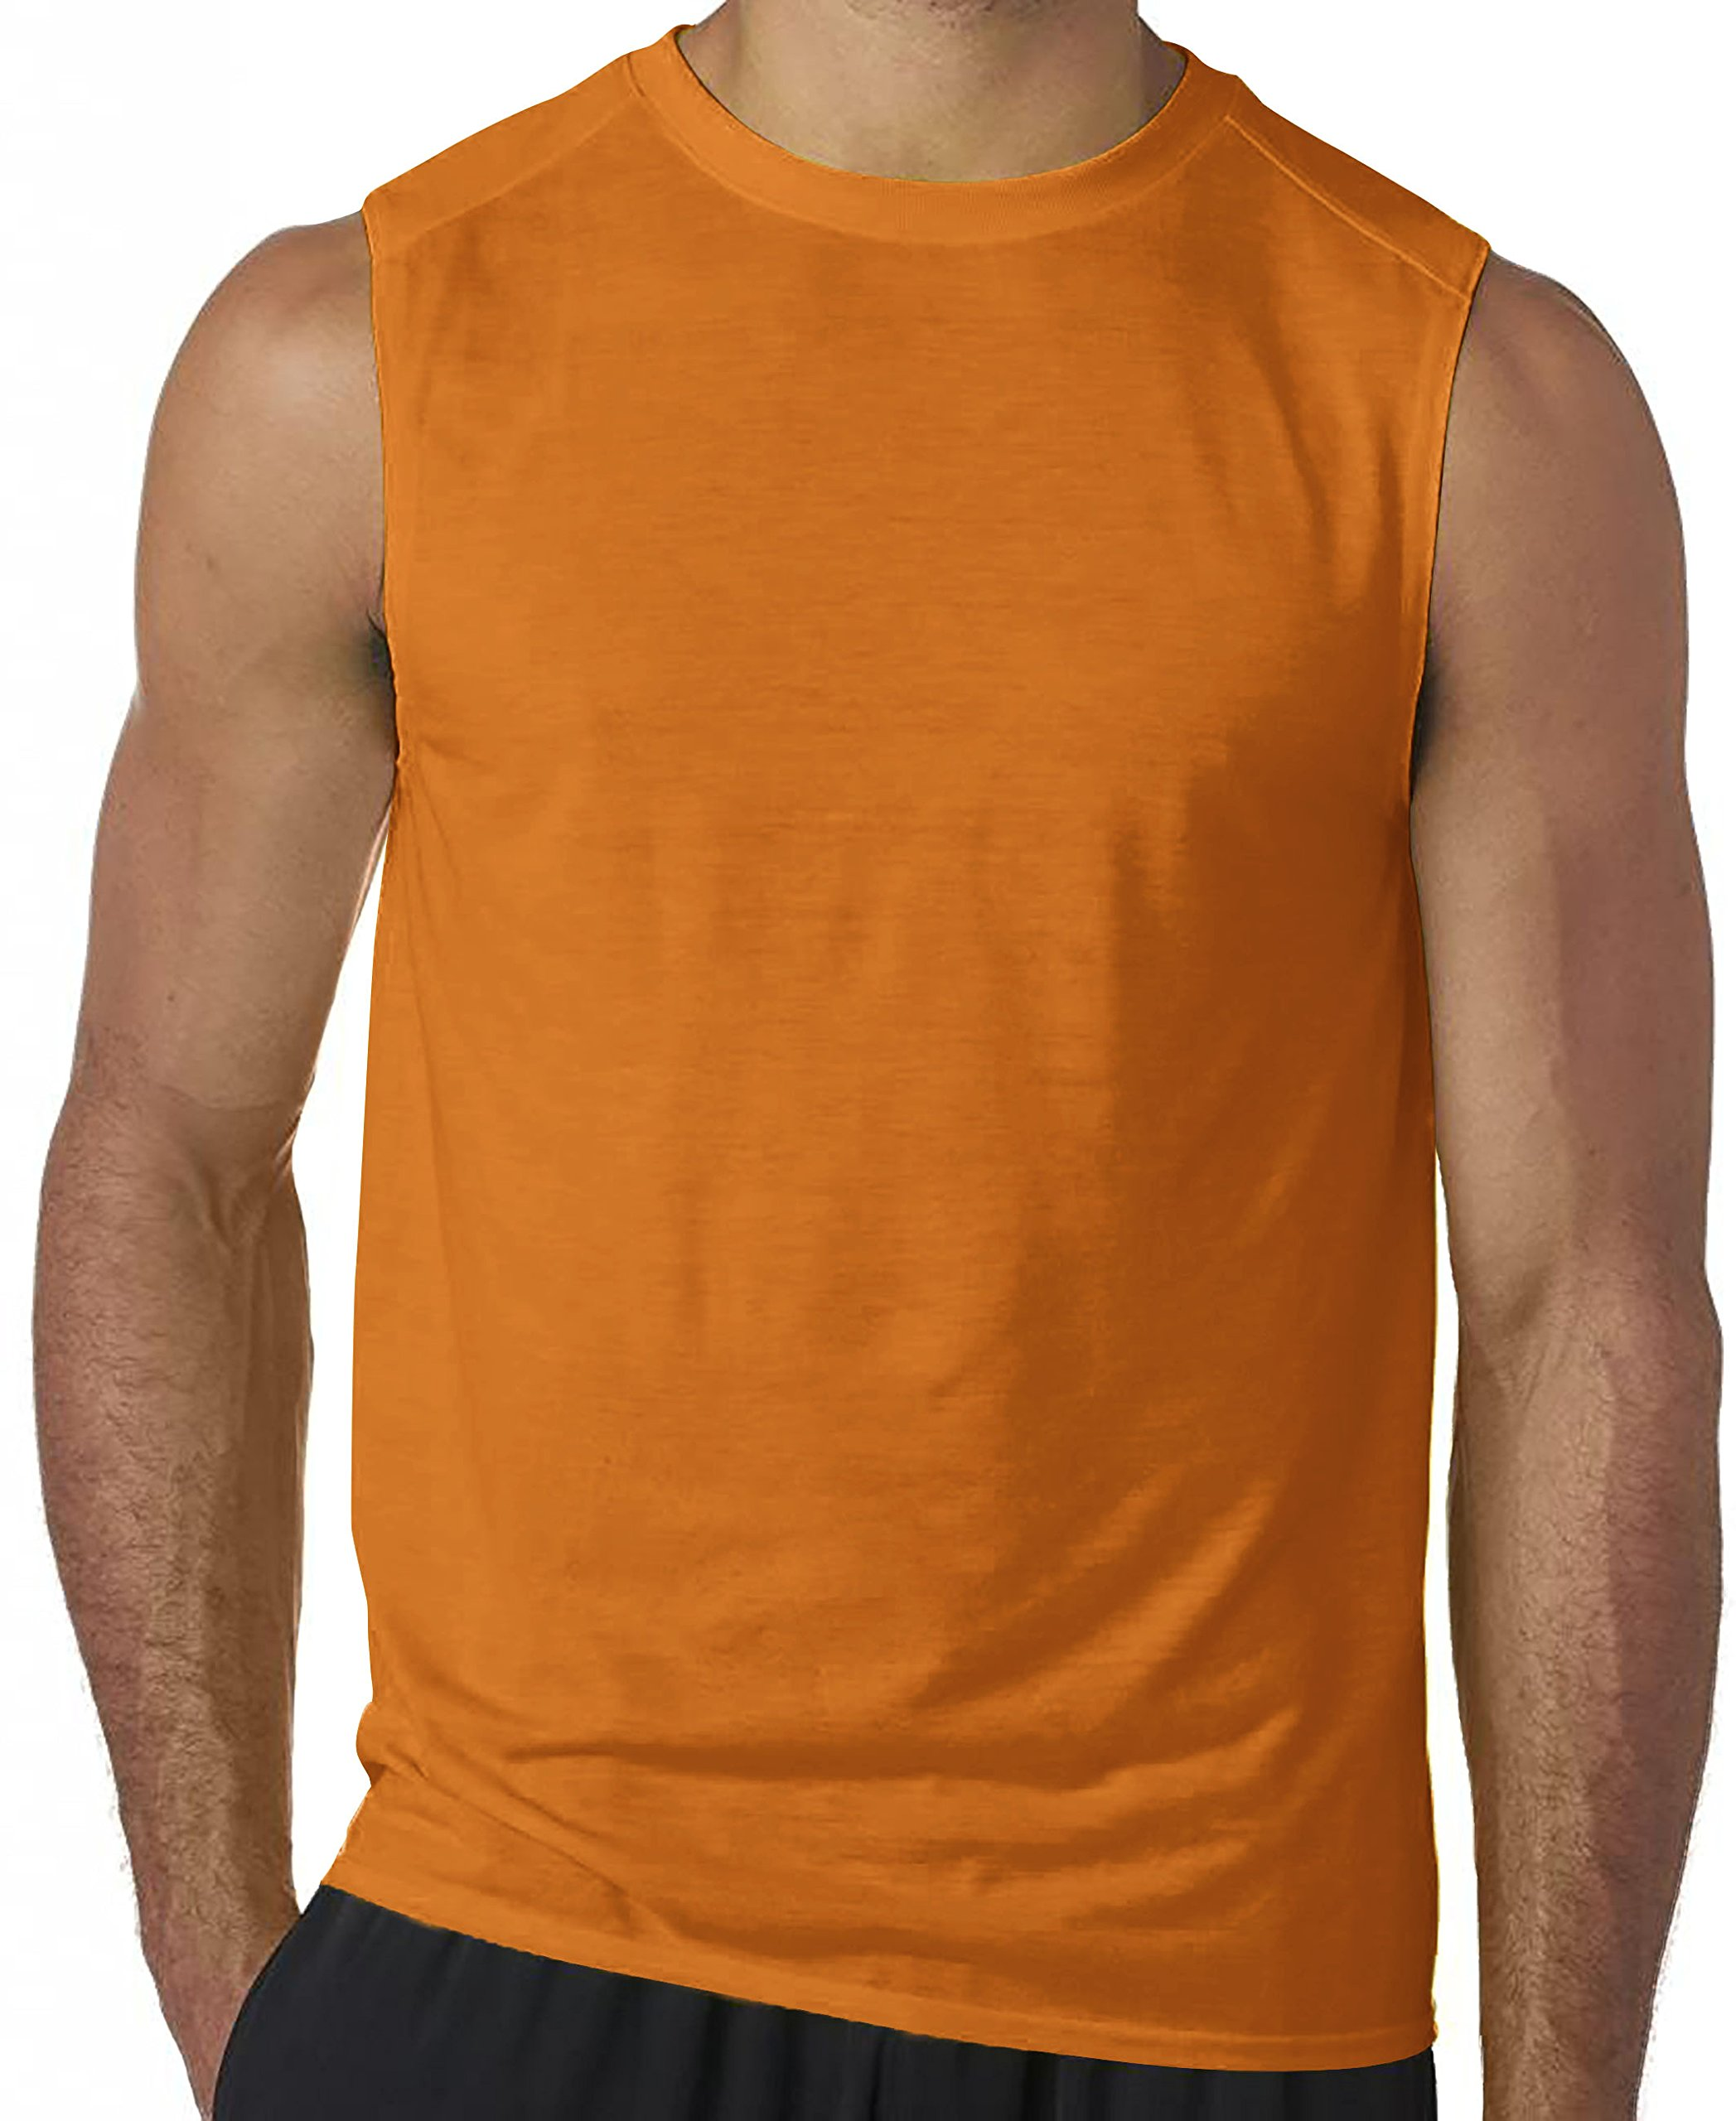 Hat and Beyond Mens Active Muscle Tank Top Athletic Gym Workout Shirts